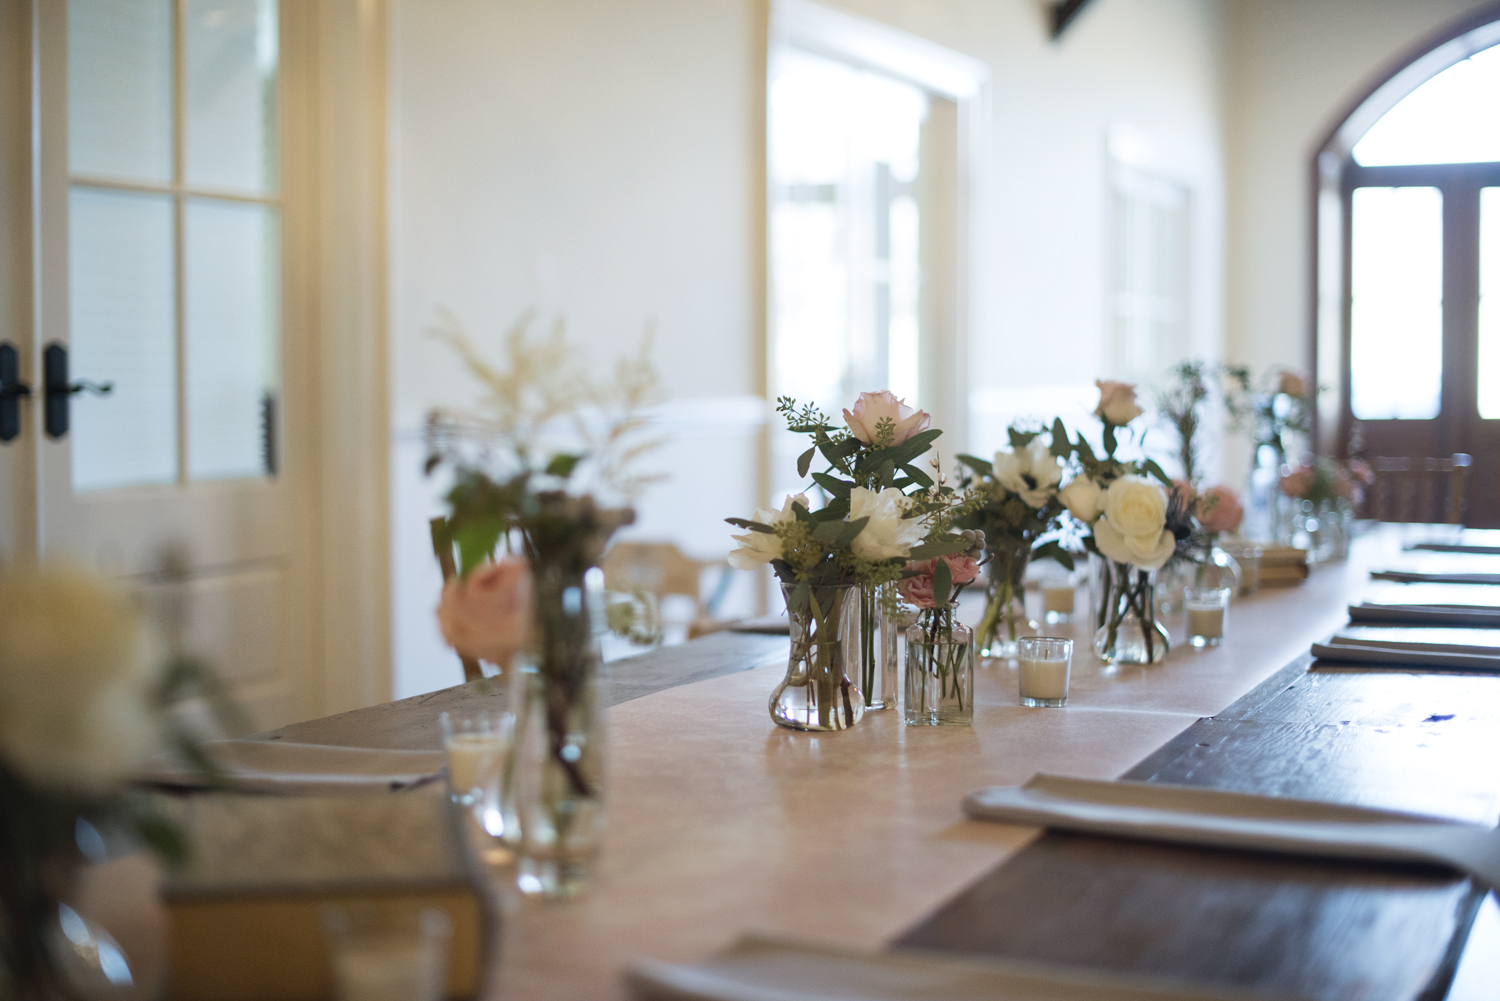 Jane Austen themed wedding with floral centerpieces